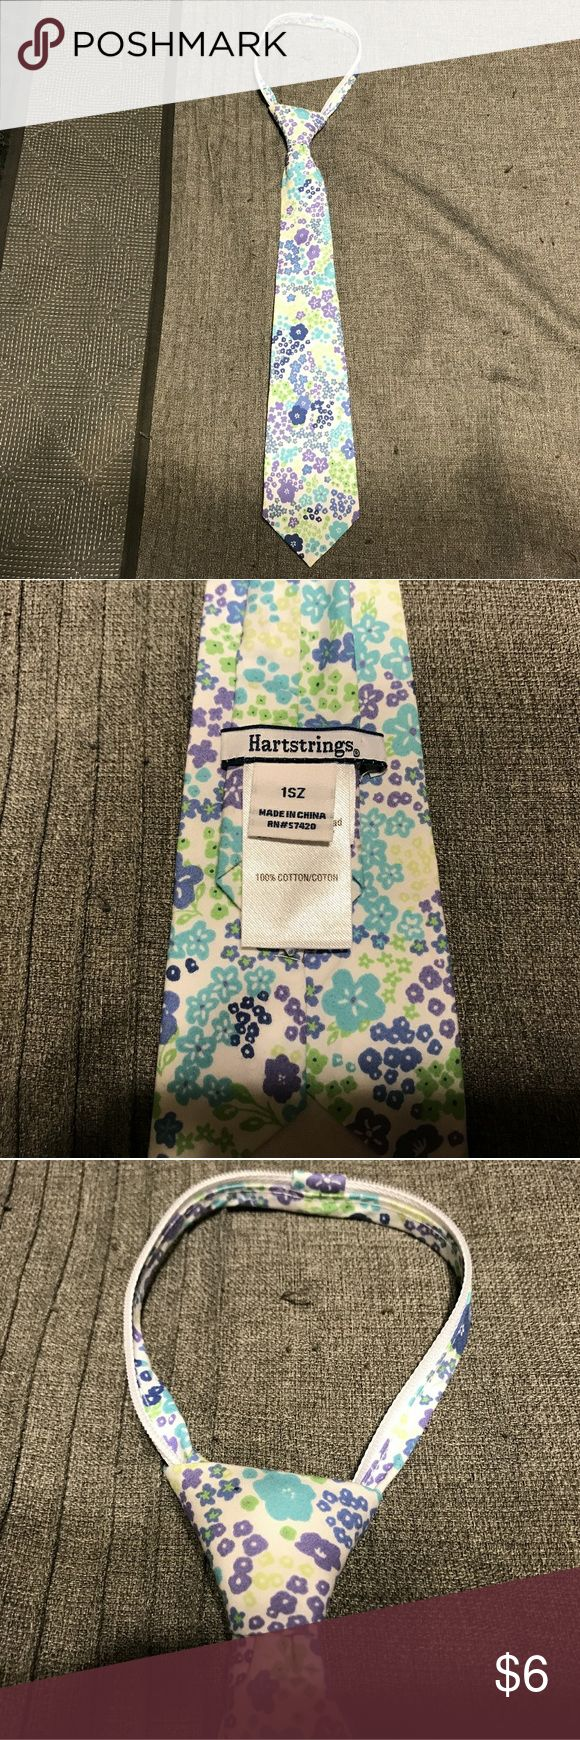 Kids Floral Zipper Tie This is a kids zipper tie by hartstrings that has a floral pattern with green, purple, and blue flowers and a white background.  The tie is one size and it's a zipper tie which makes it adjustable. This tie is in excellent condition. Hartstrings Accessories Ties